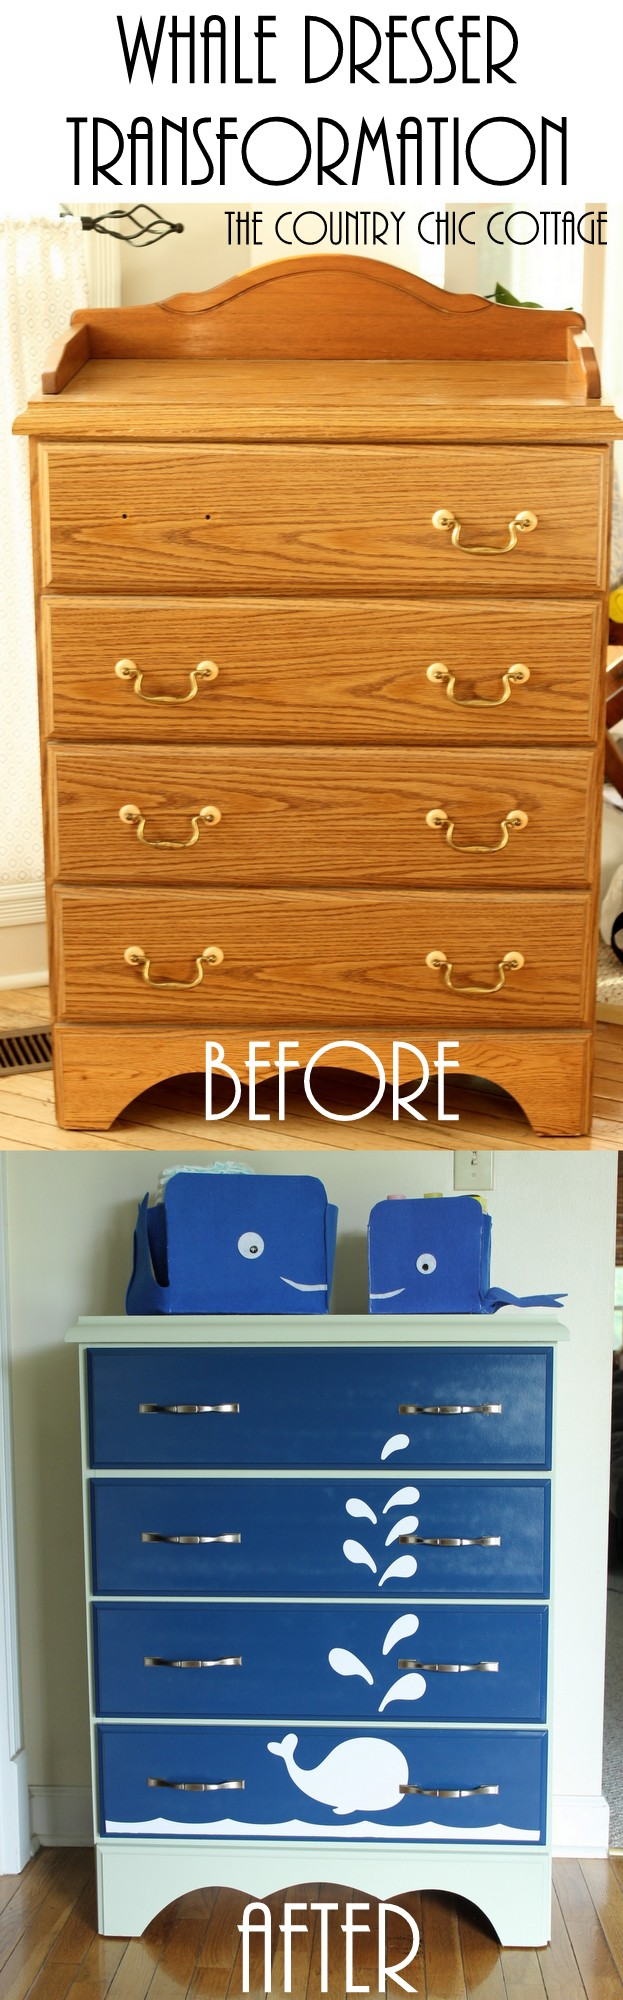 Use Krylon spray paint to create this fun whale painted dresser in just a few minutes. Click here to get the full tutorial!